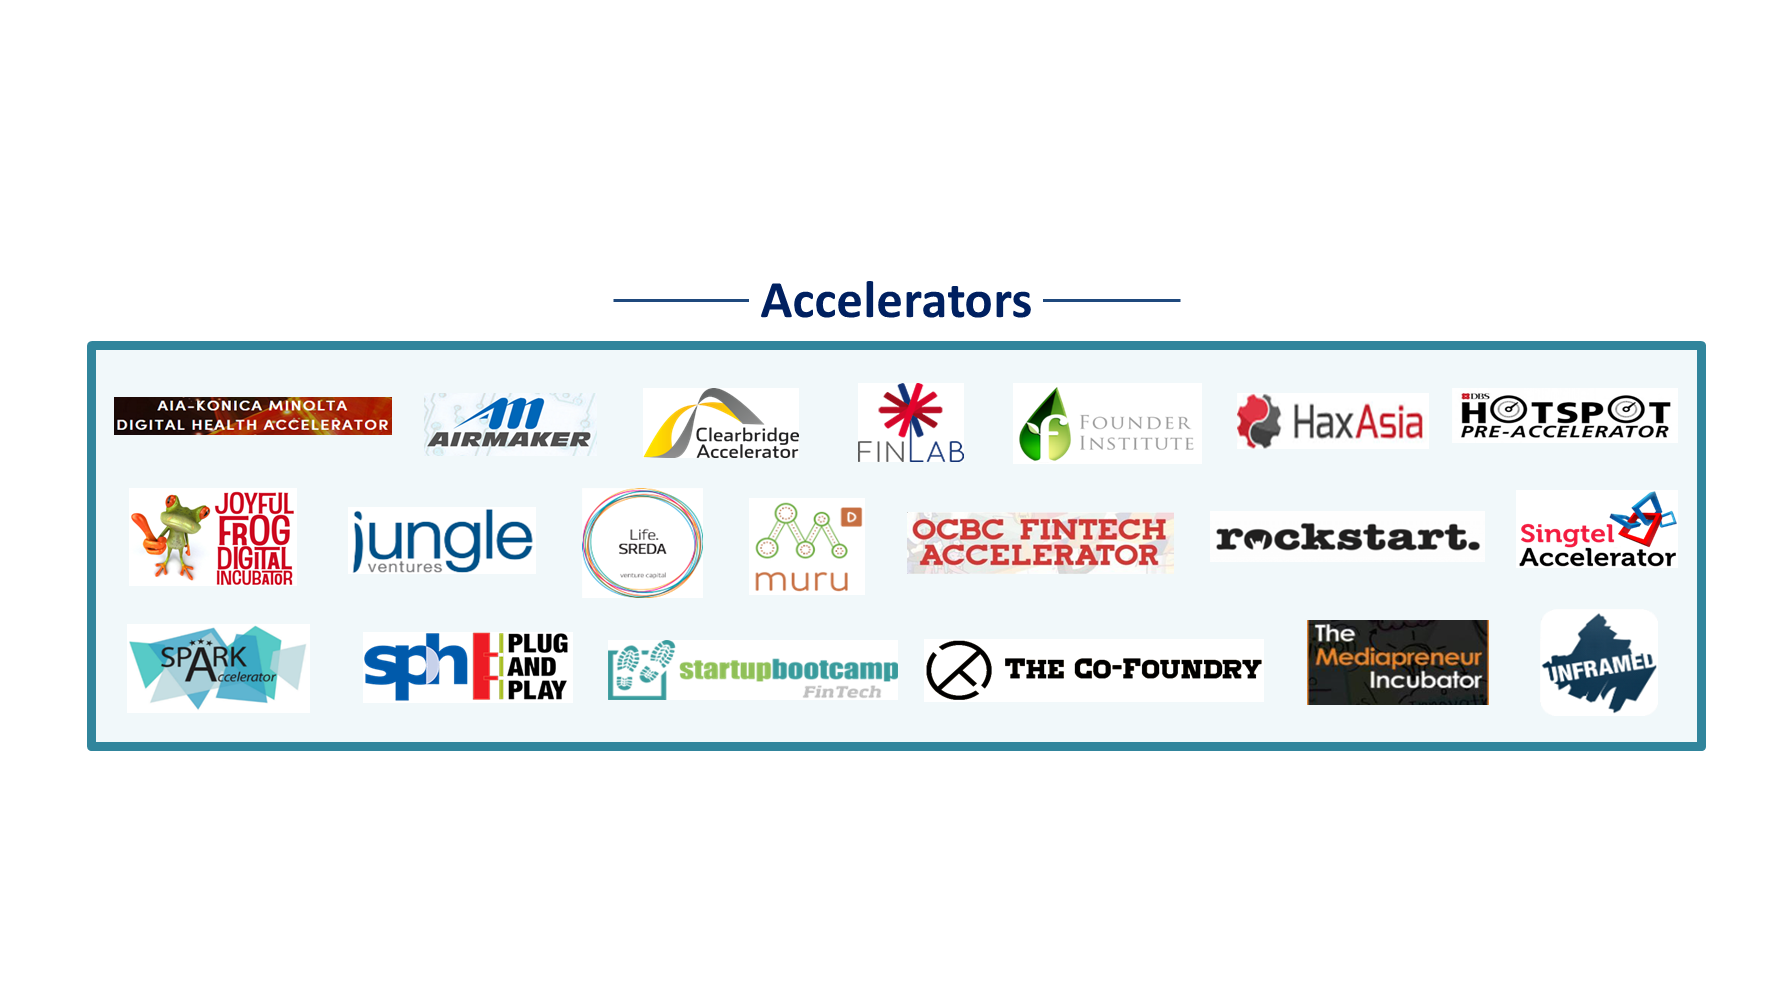 Accelerators (as at May 2016)